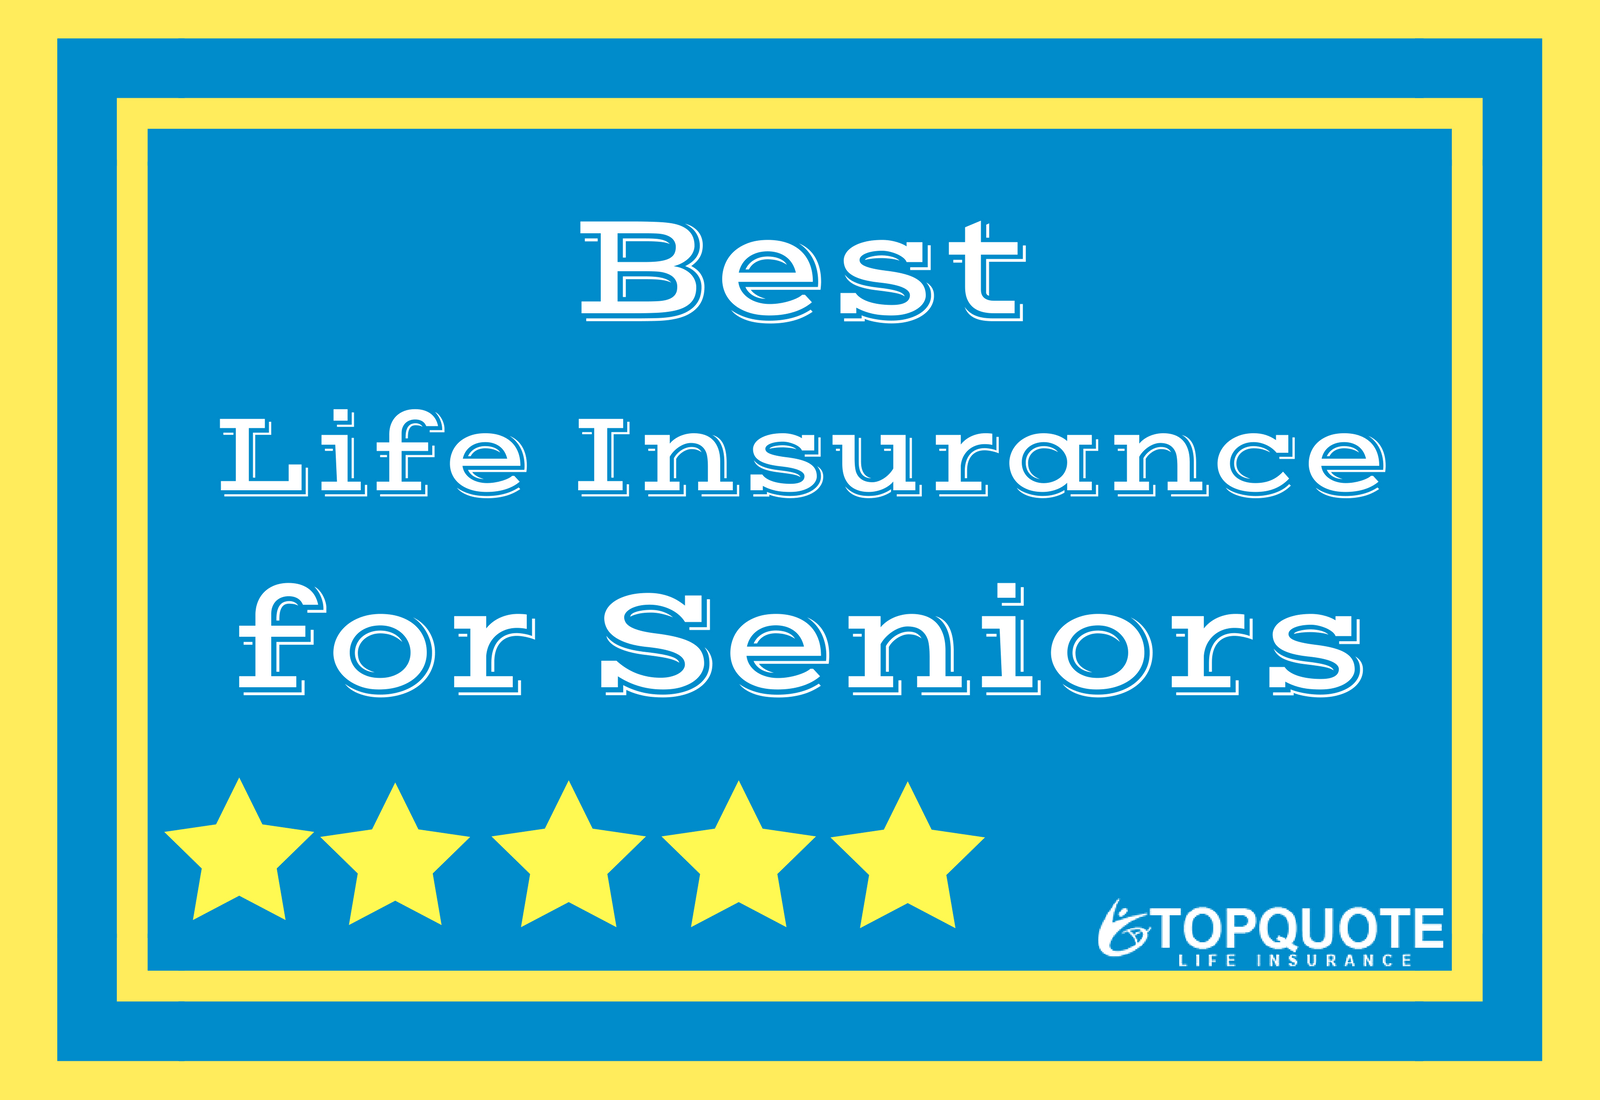 Senior Life Insurance Quotes Online Pleasing Best Life Insurance For Seniors  Top 10 Senior Life Insurance